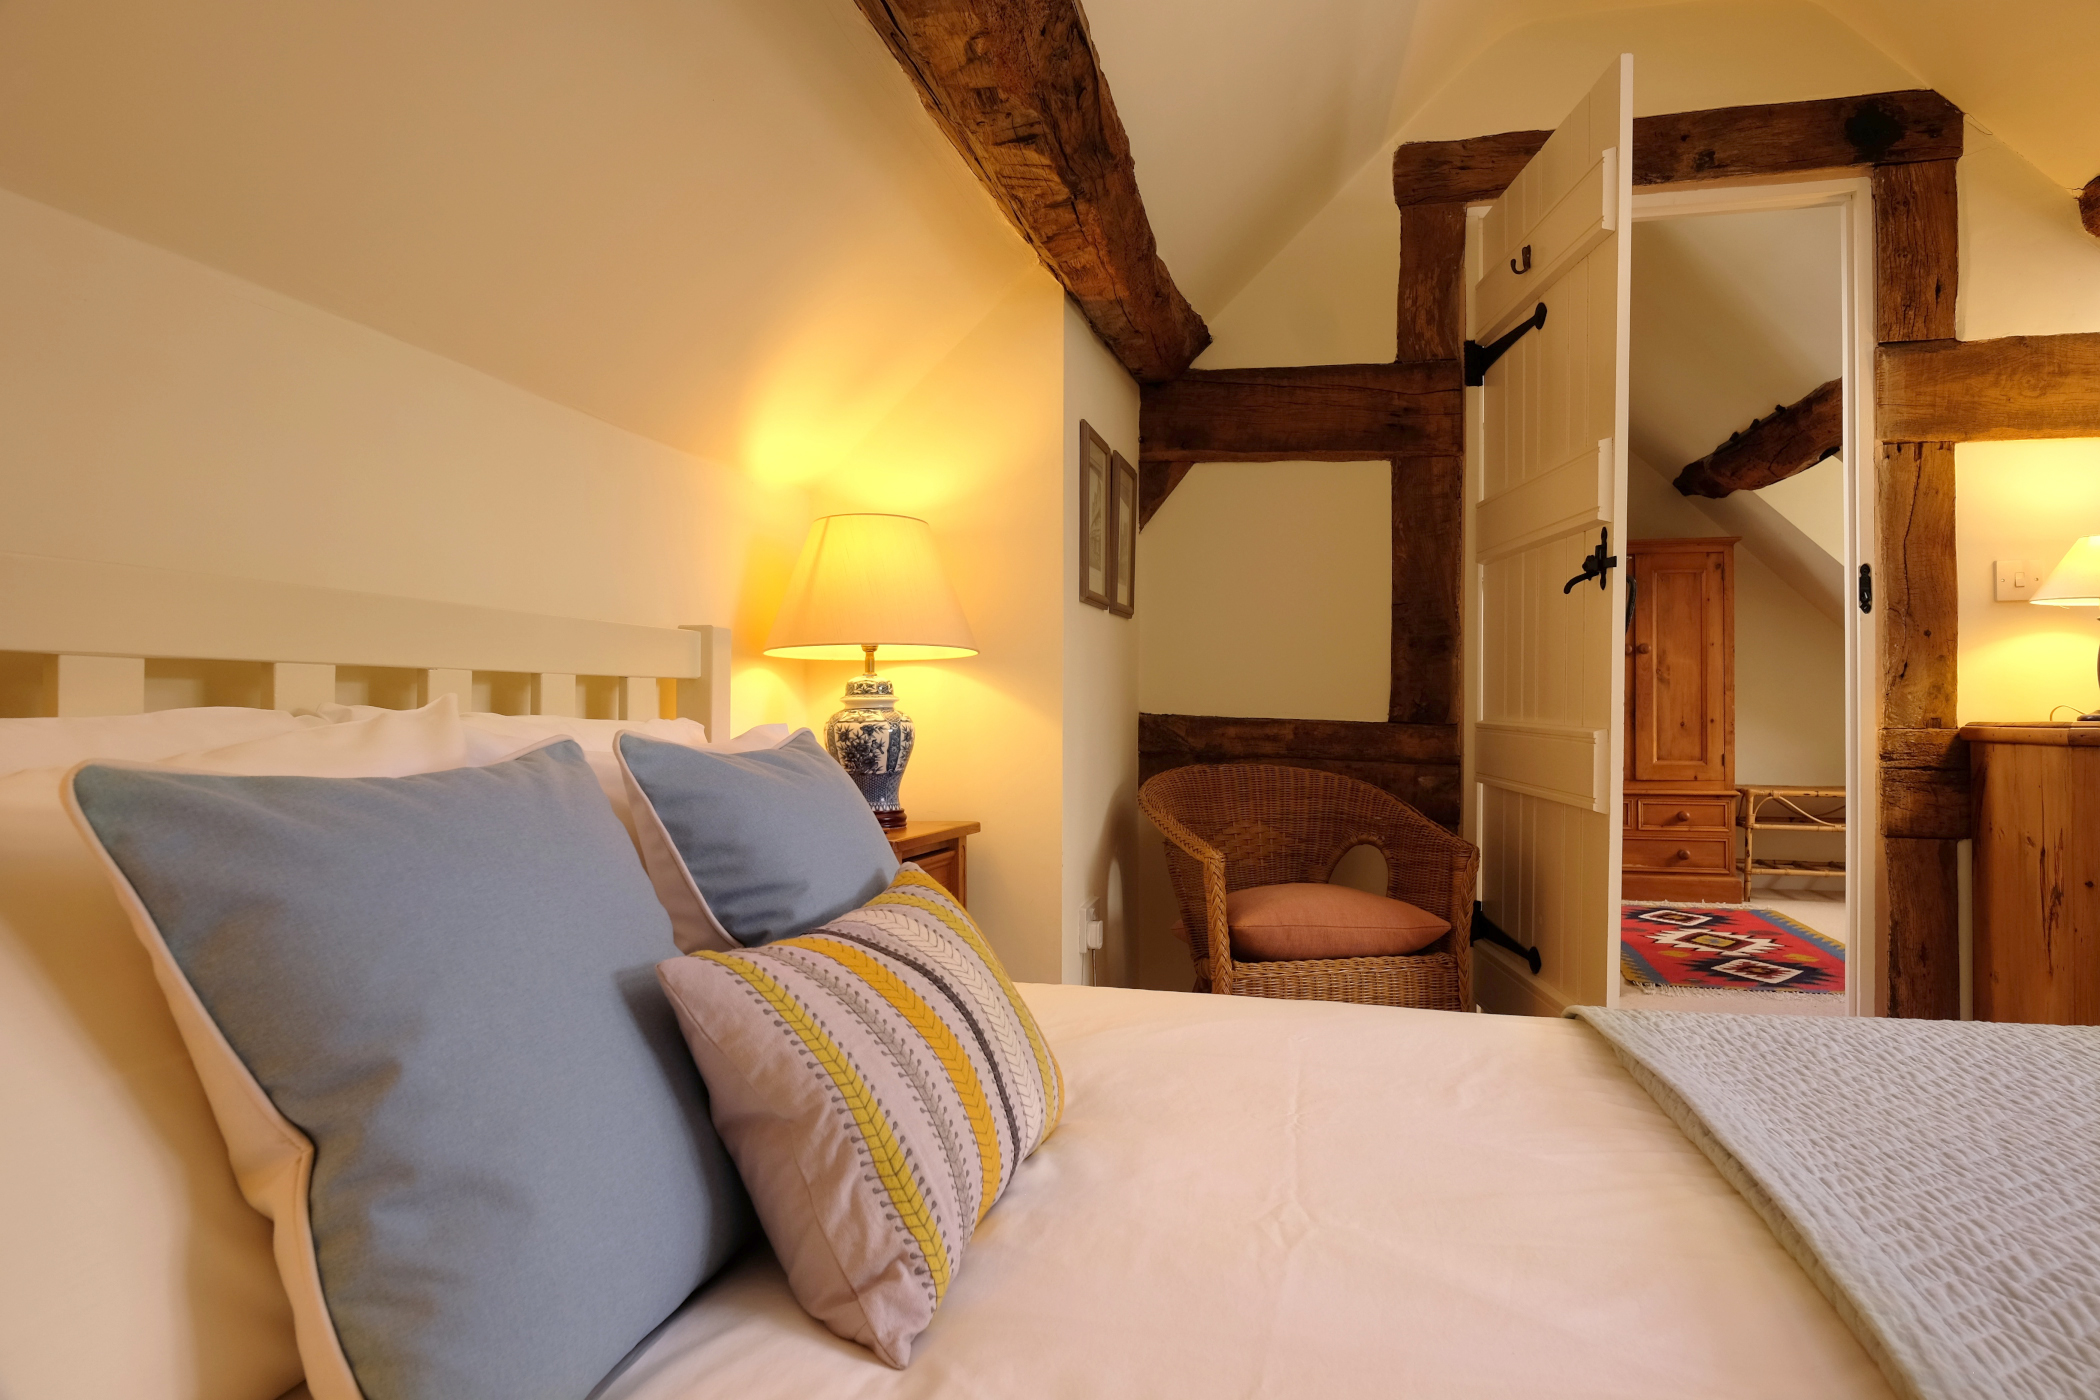 comfy king sized bed with fresh linen and luxurious pillows